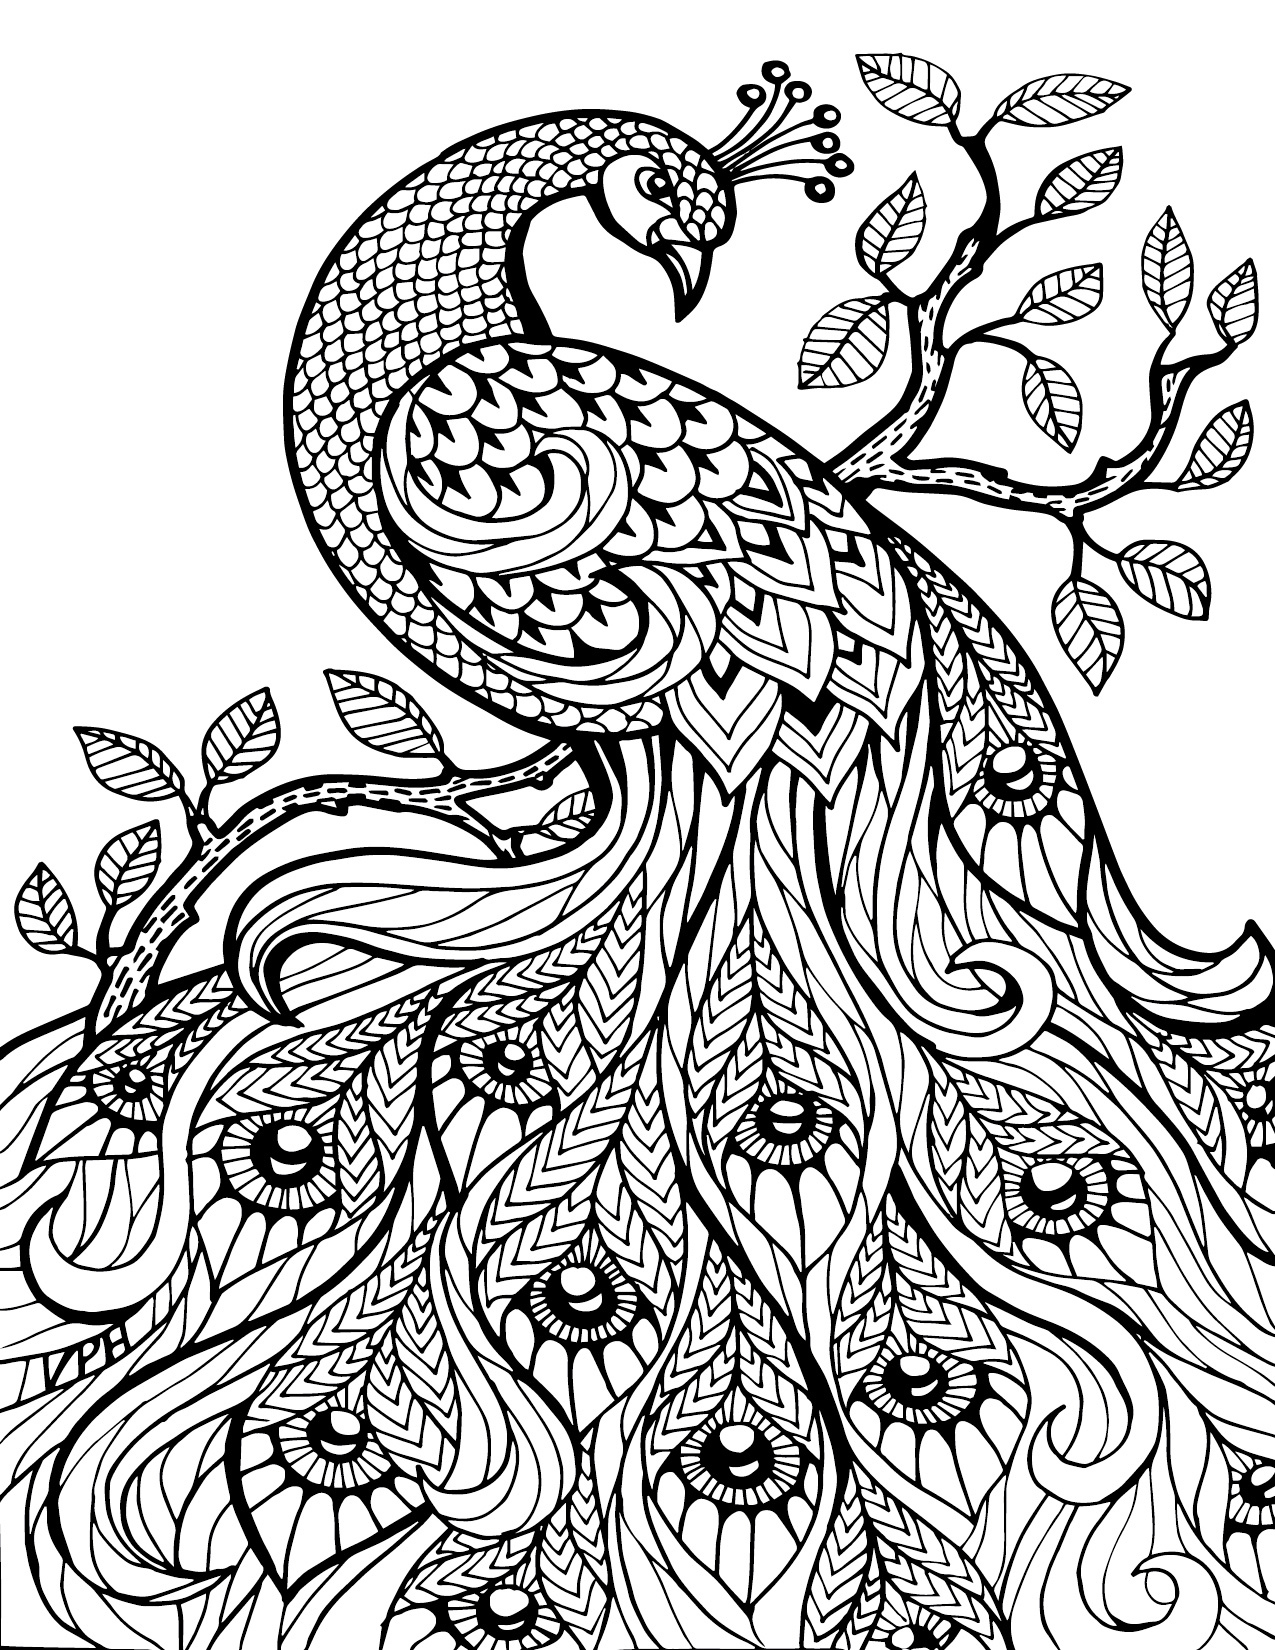 free coloring pages online best free printable coloring pages for kids and teens pages online free coloring